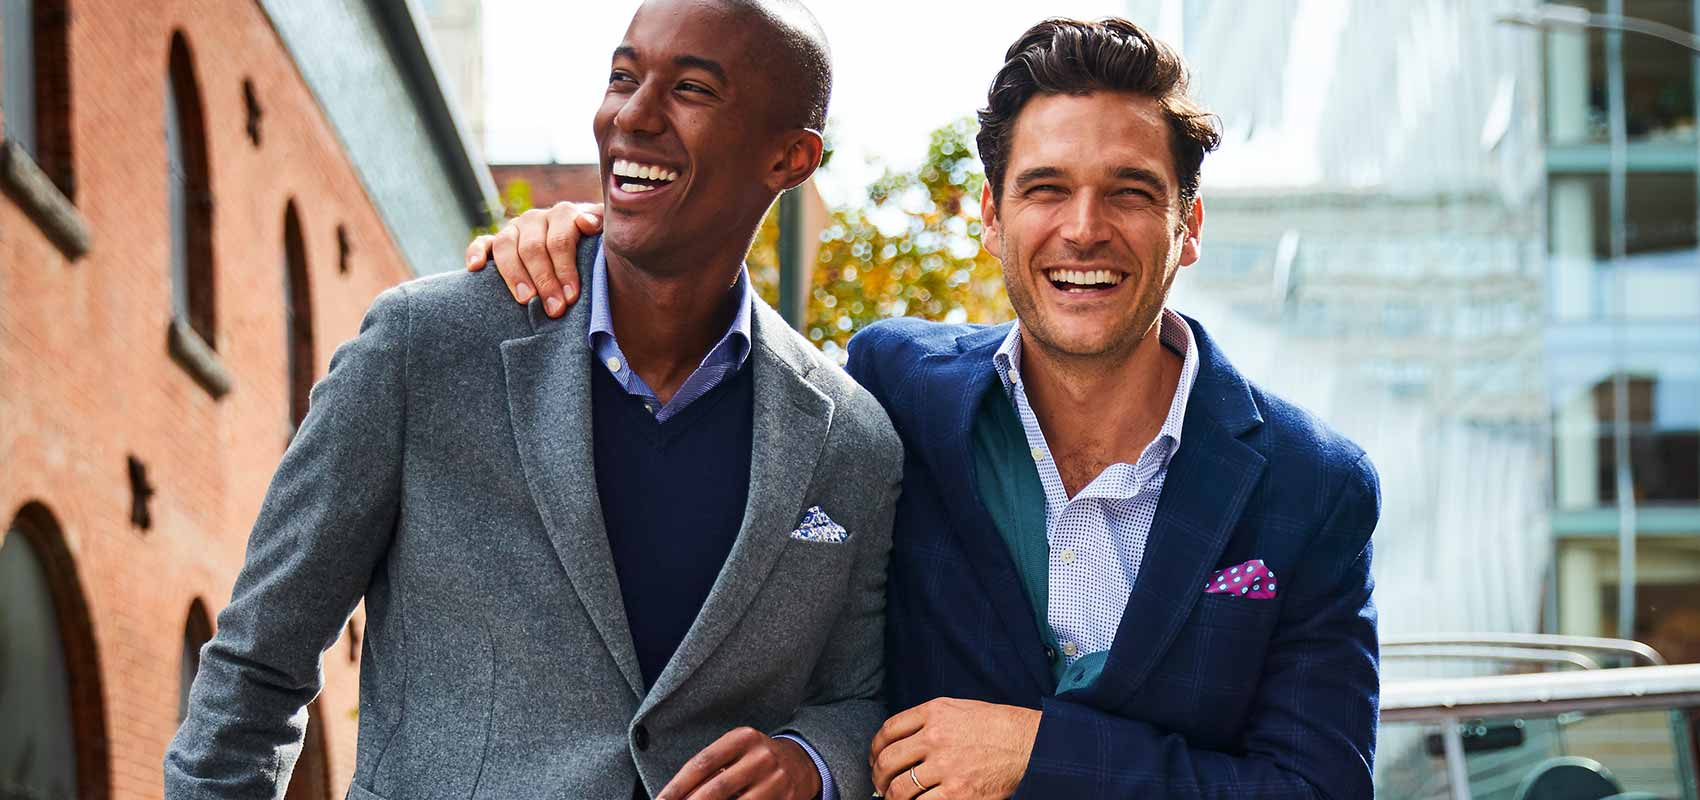 Charles Tyrwhitt business casual collection